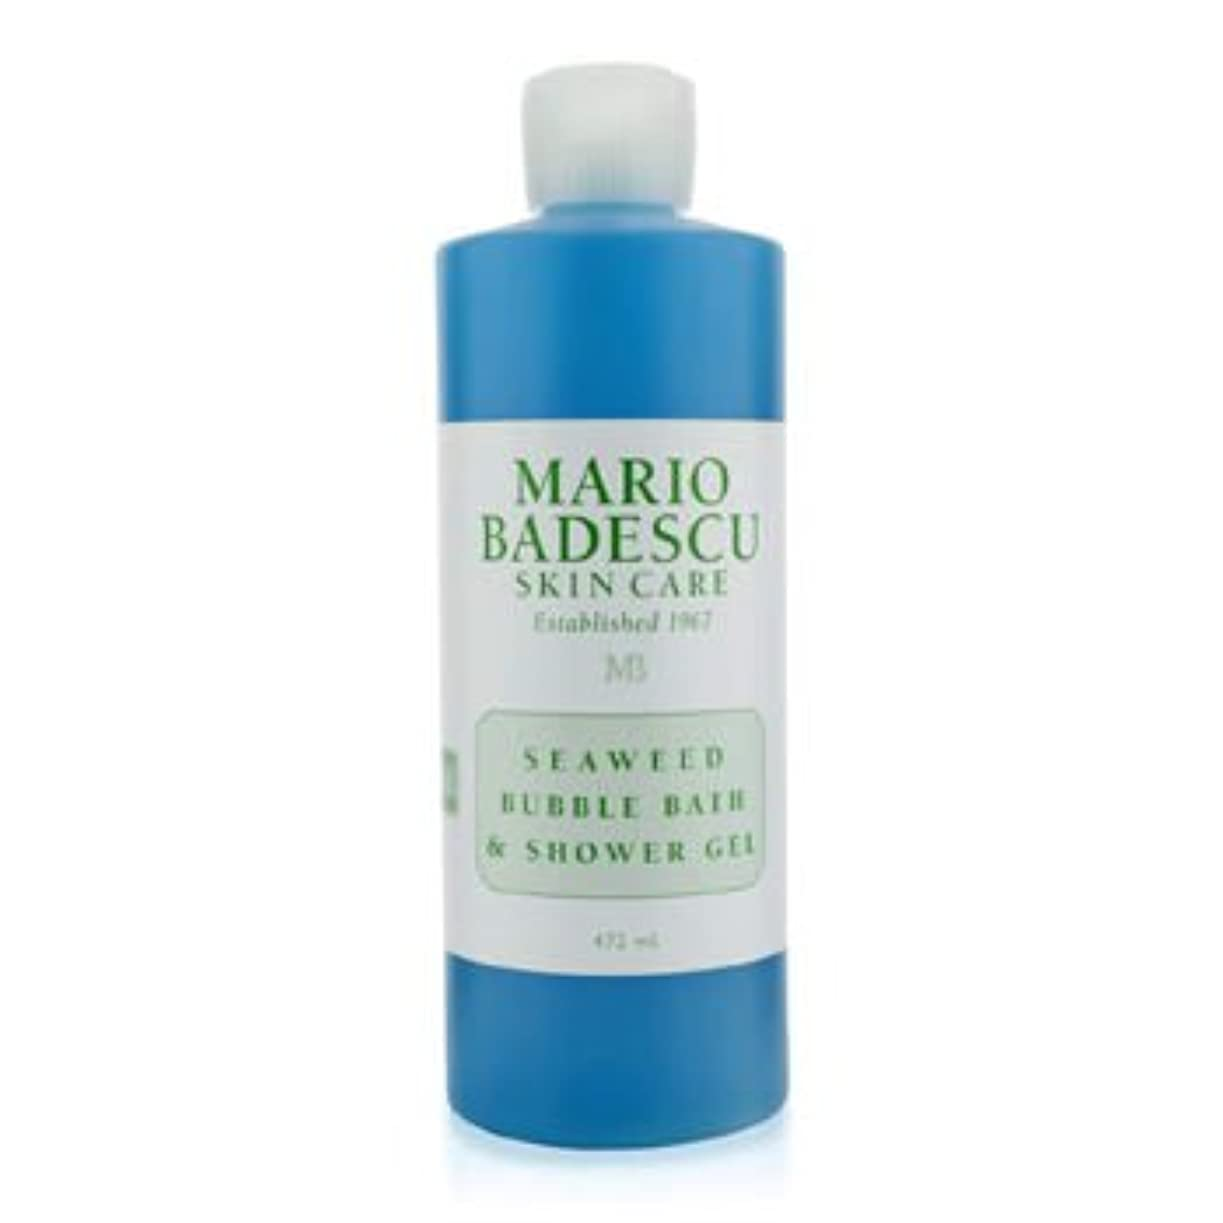 露骨なあご瀬戸際[Mario Badescu] Seaweed Bubble Bath & Shower Gel 472ml/16oz